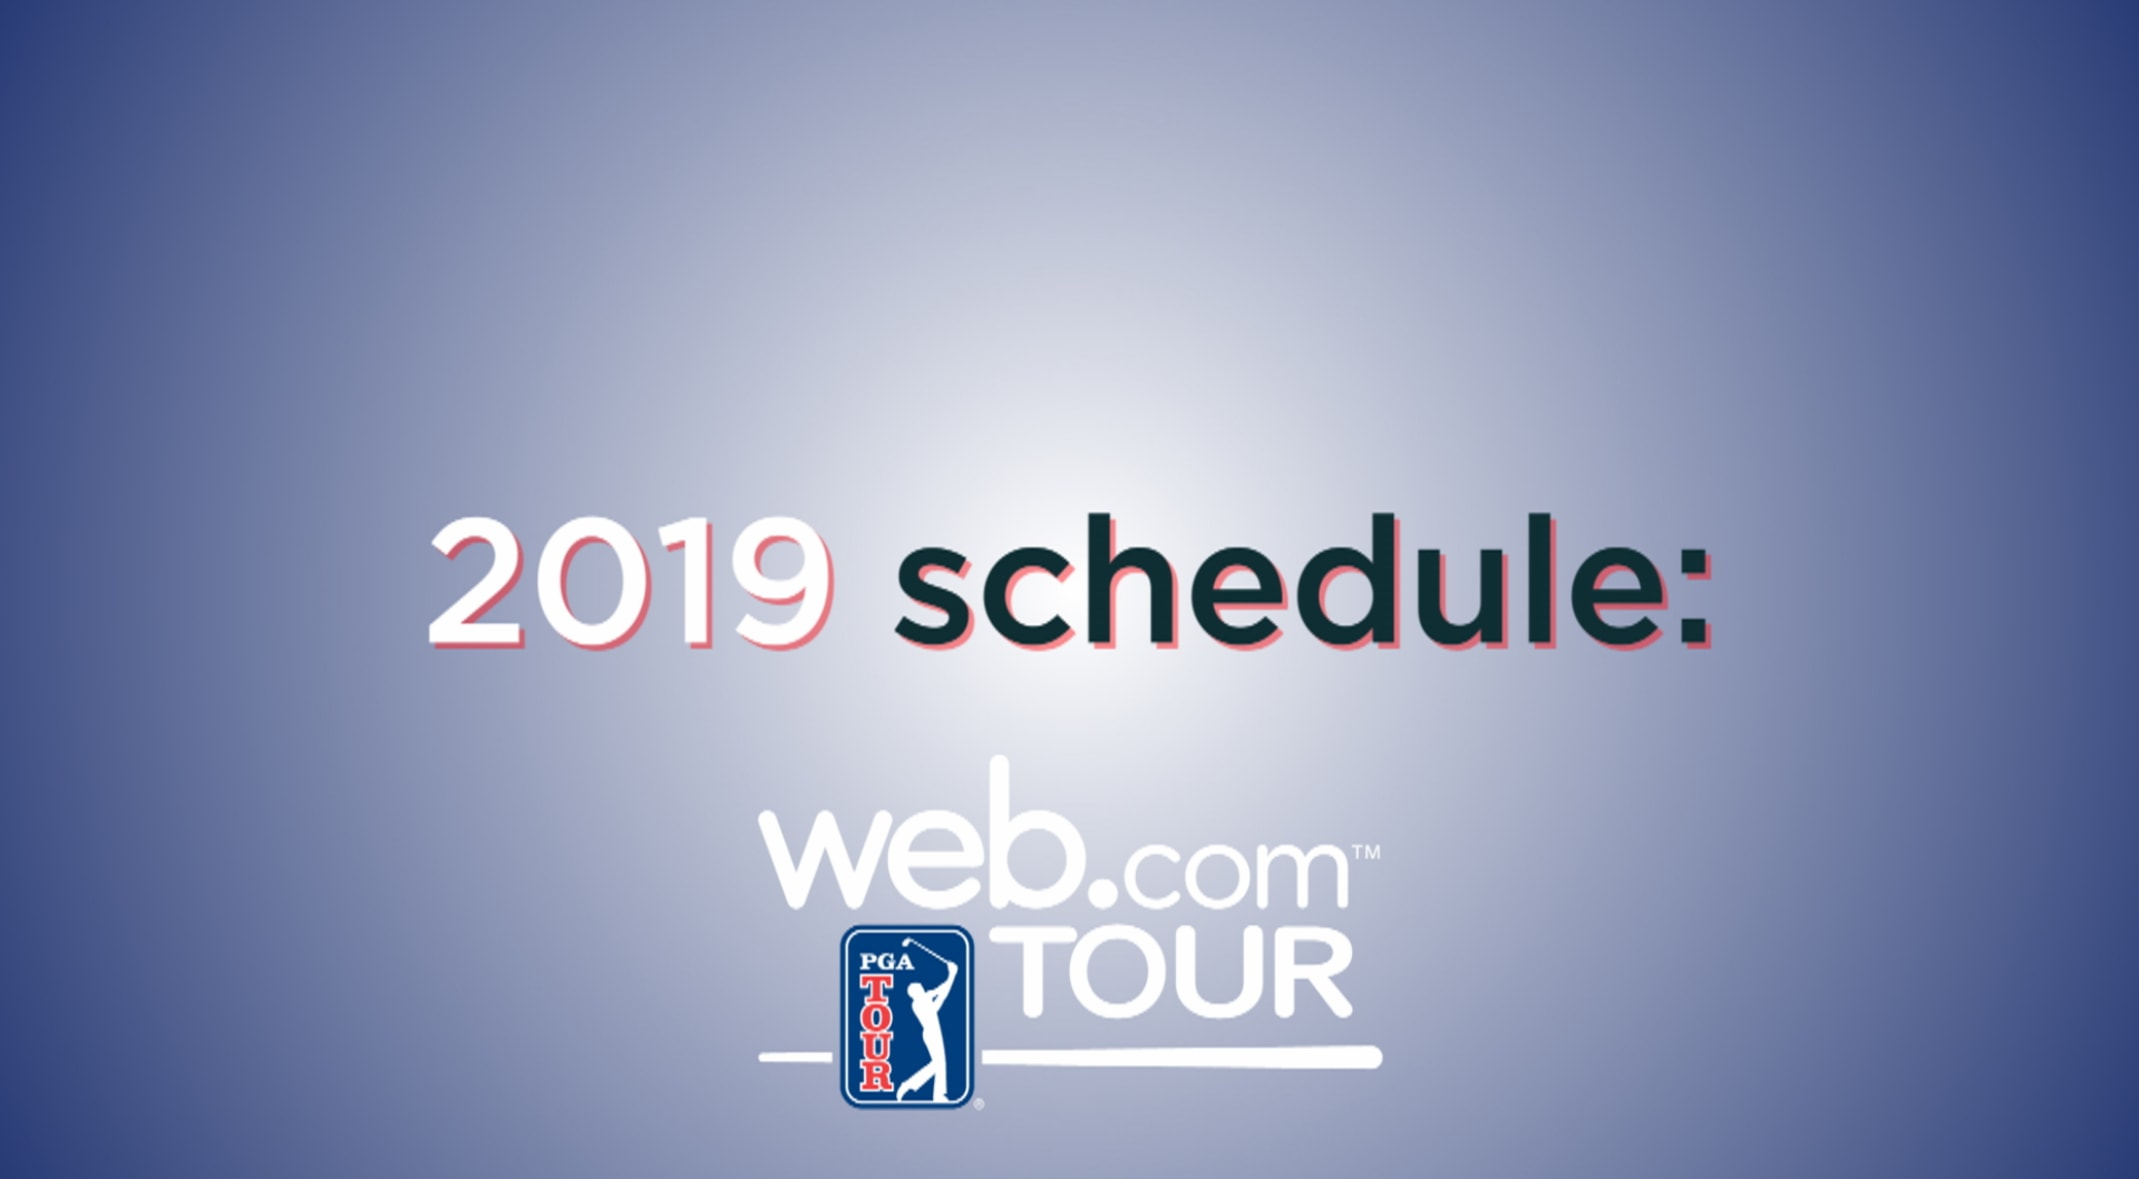 pga tour announces 2019 web tour schedule